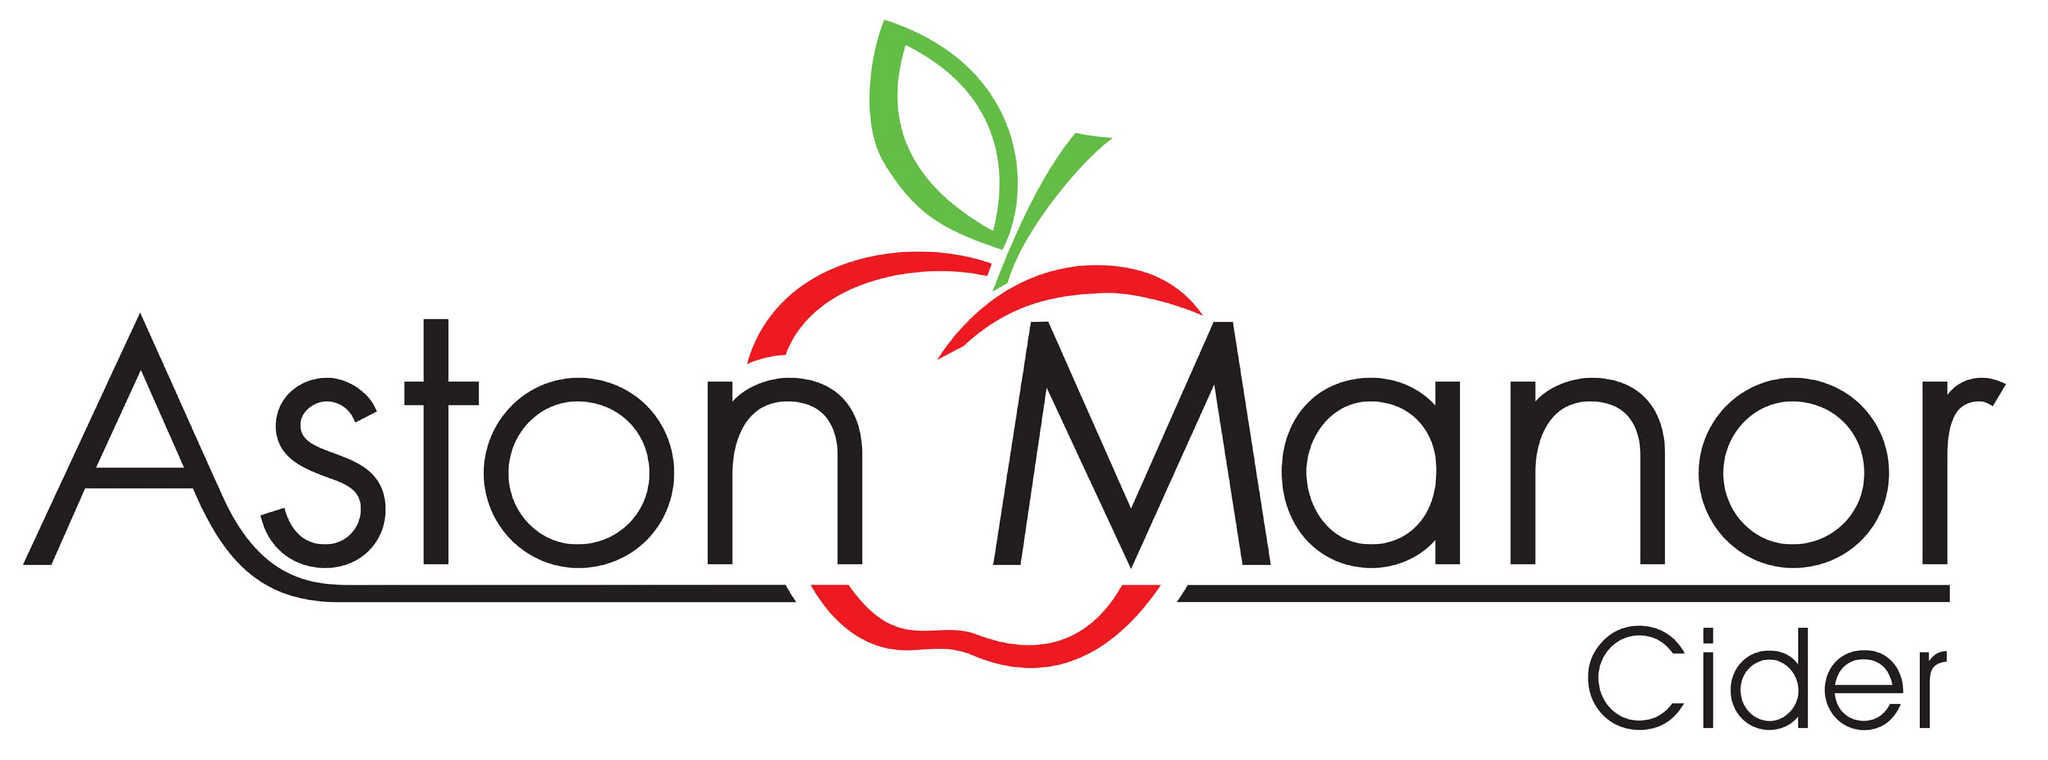 Aston Manor Logo.png